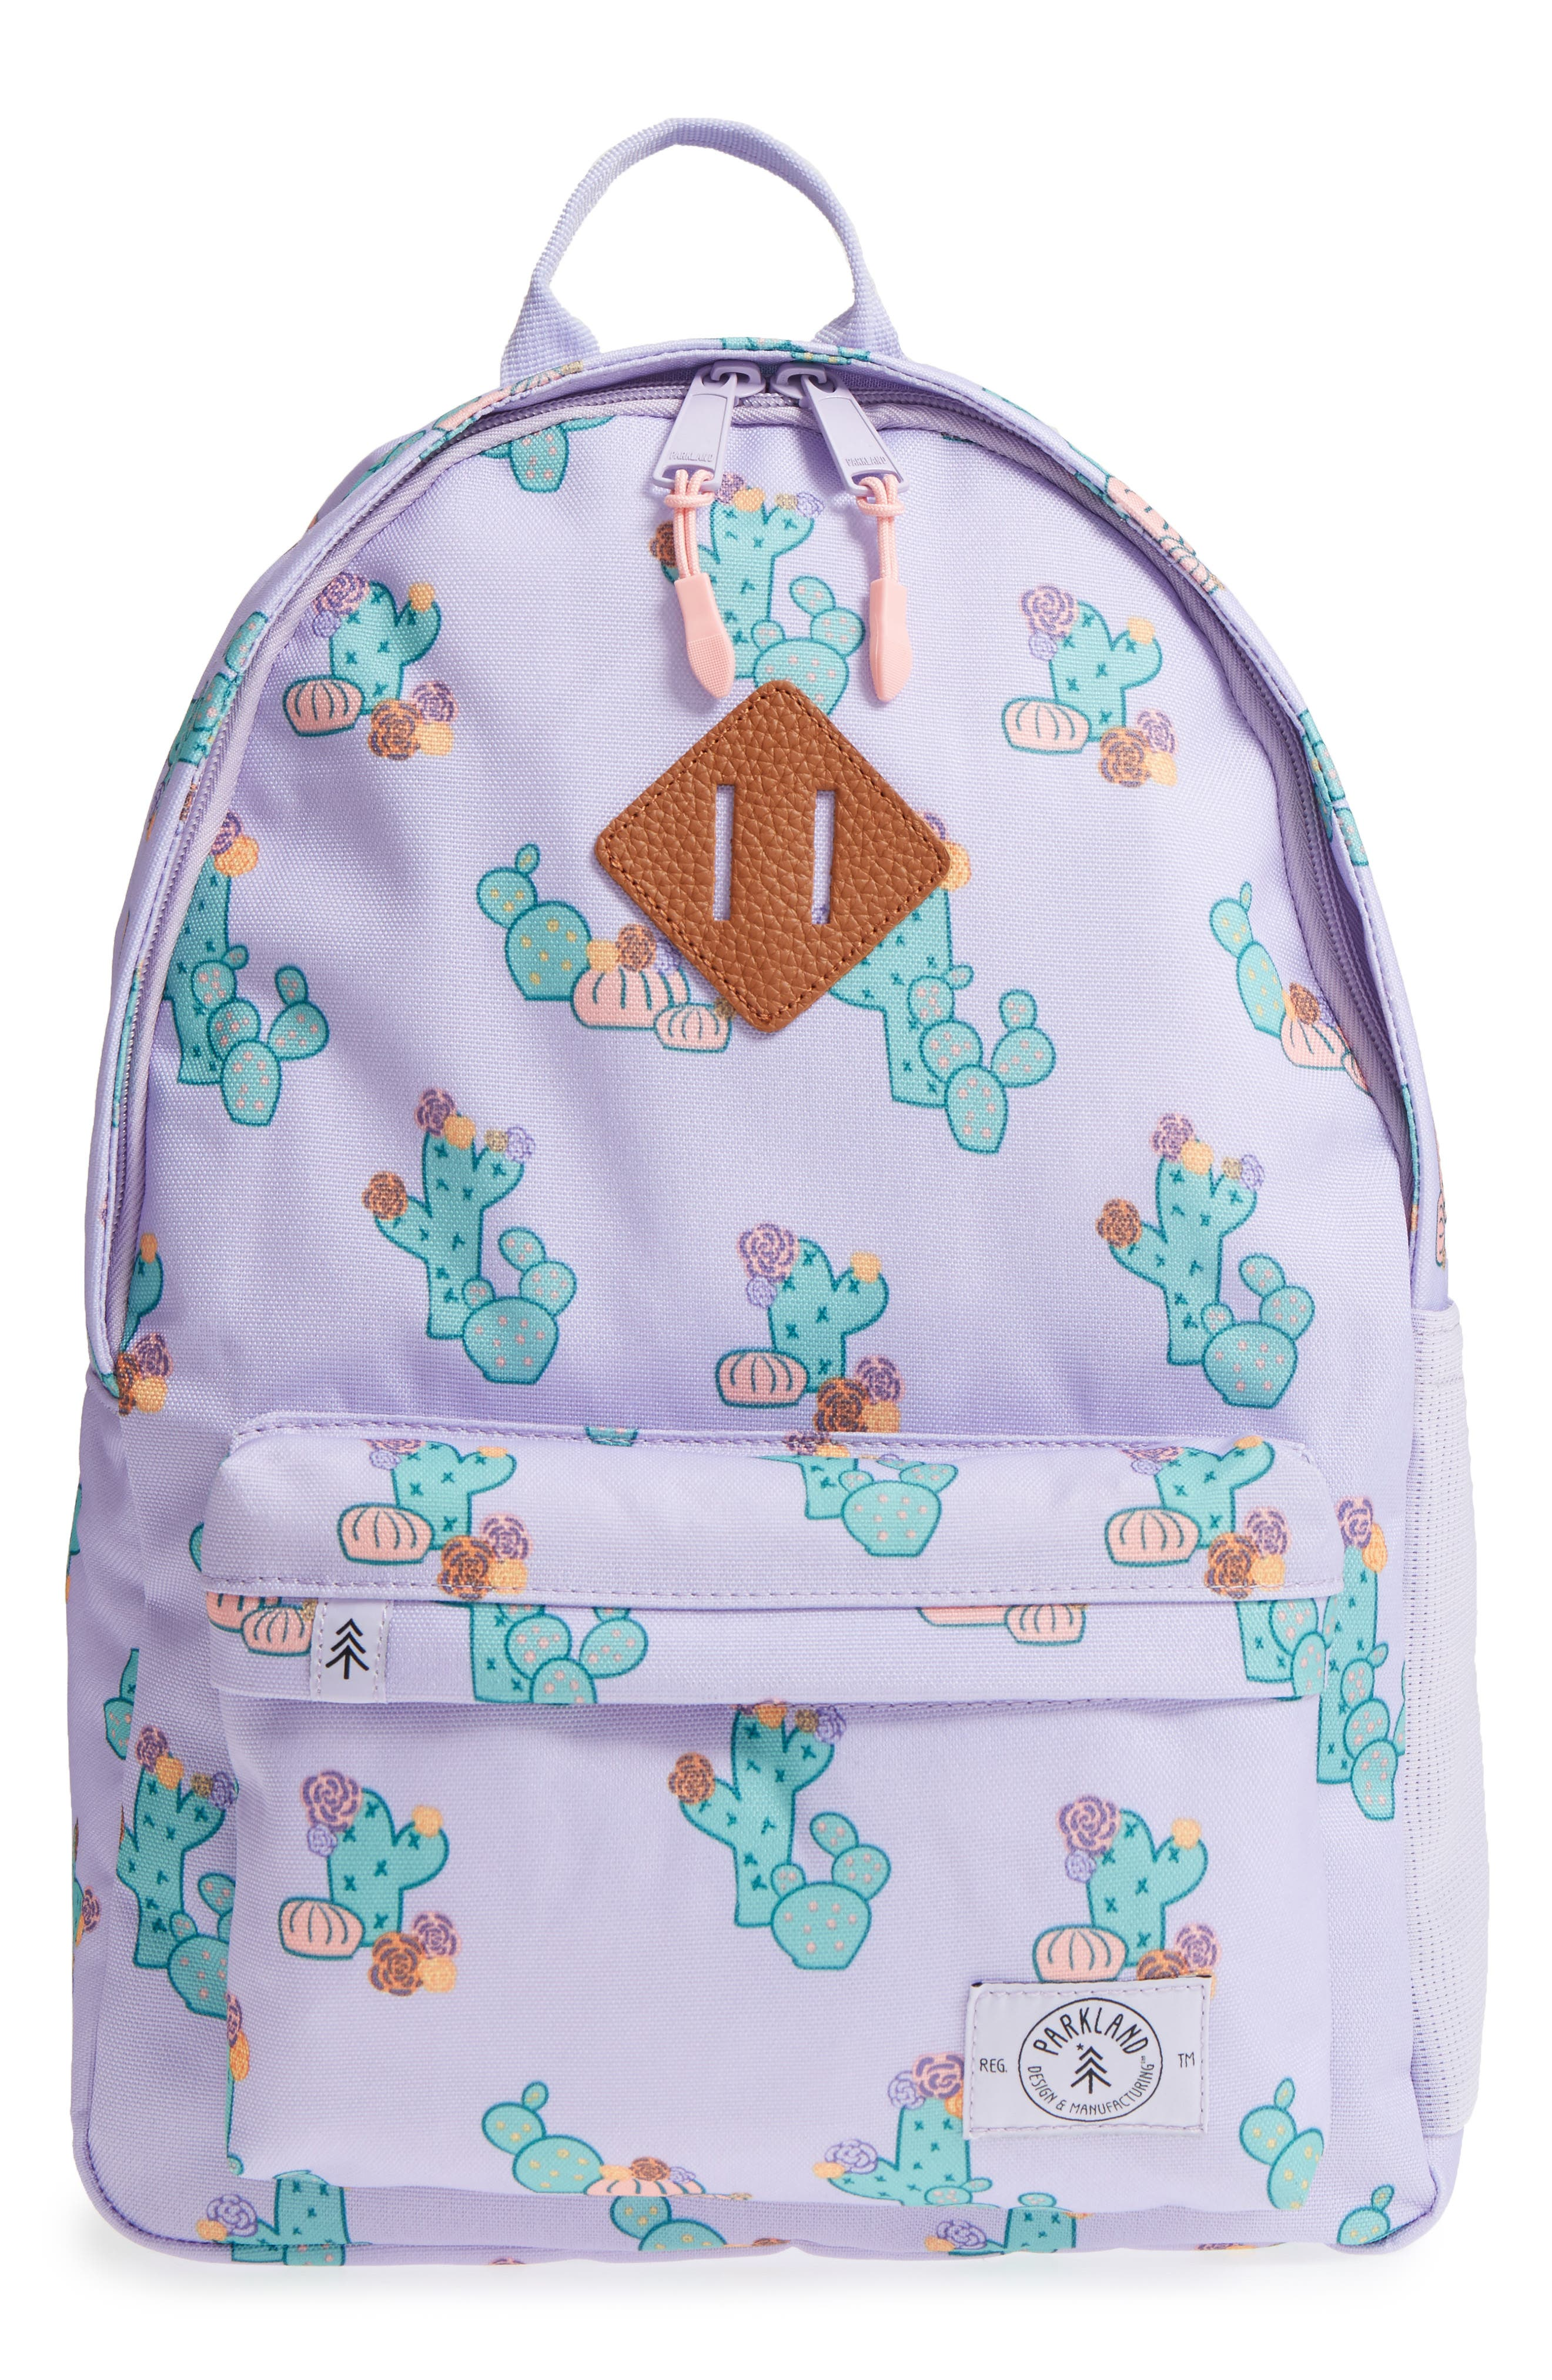 Bayside Cactus Flower Backpack,                             Main thumbnail 1, color,                             533